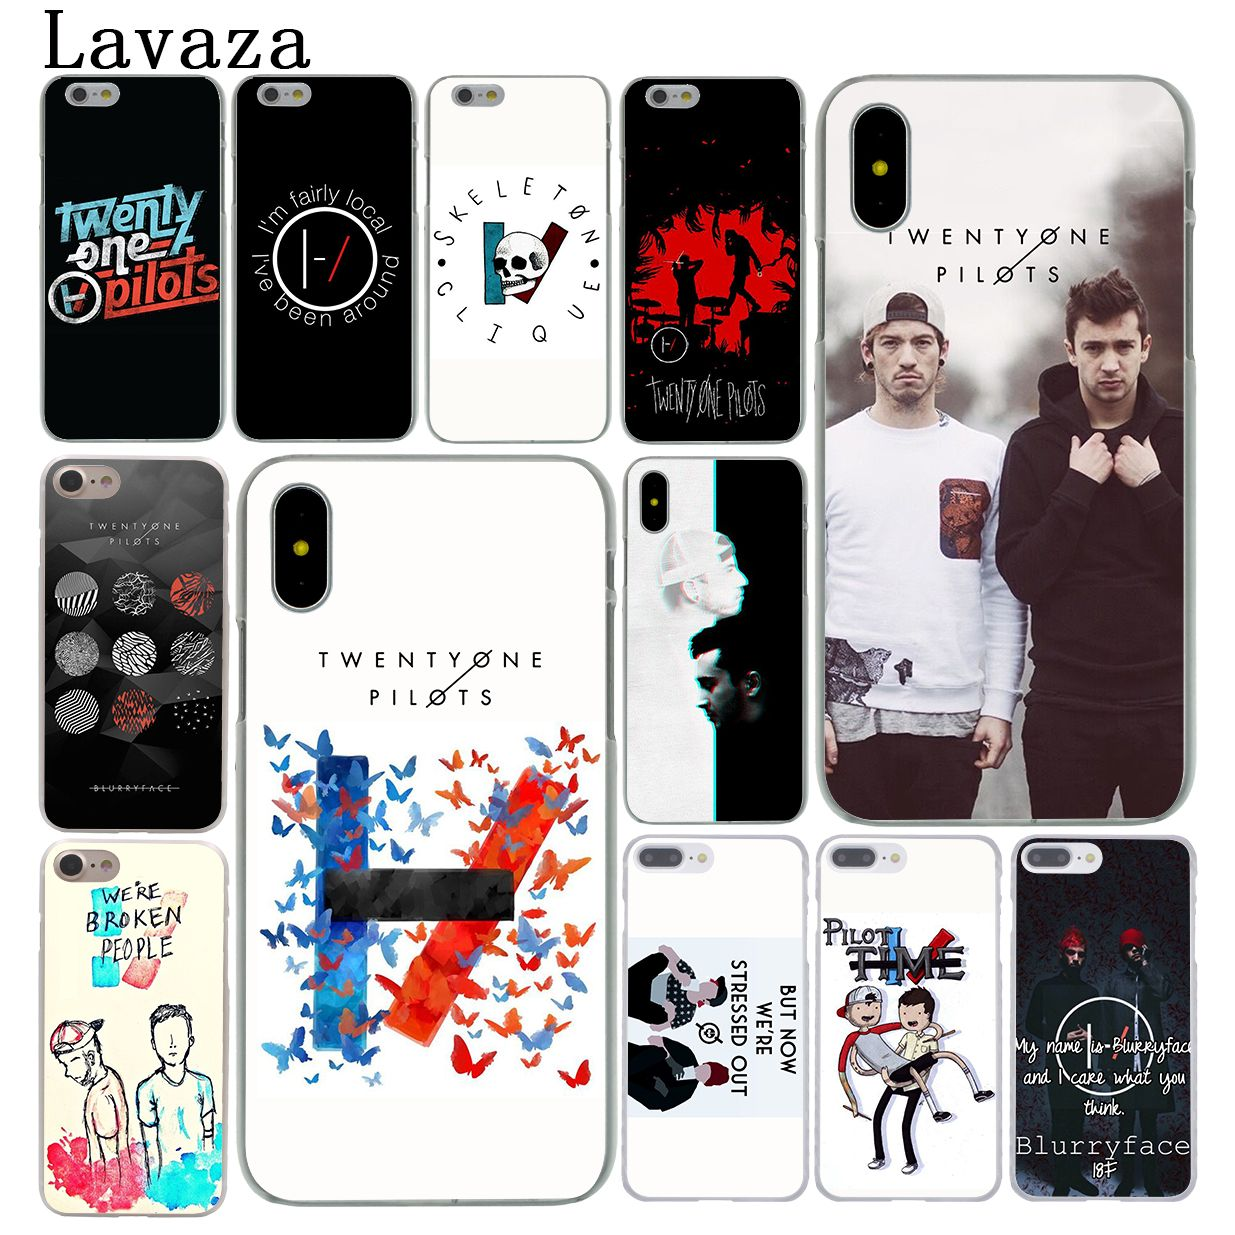 Lavaza Twenty One Pilots 21 Pilots Music Hard Phone Case for iPhone XR X XS 11 Pro Max 10 7 8 6 6S 5 5S SE 4S 4 Cover